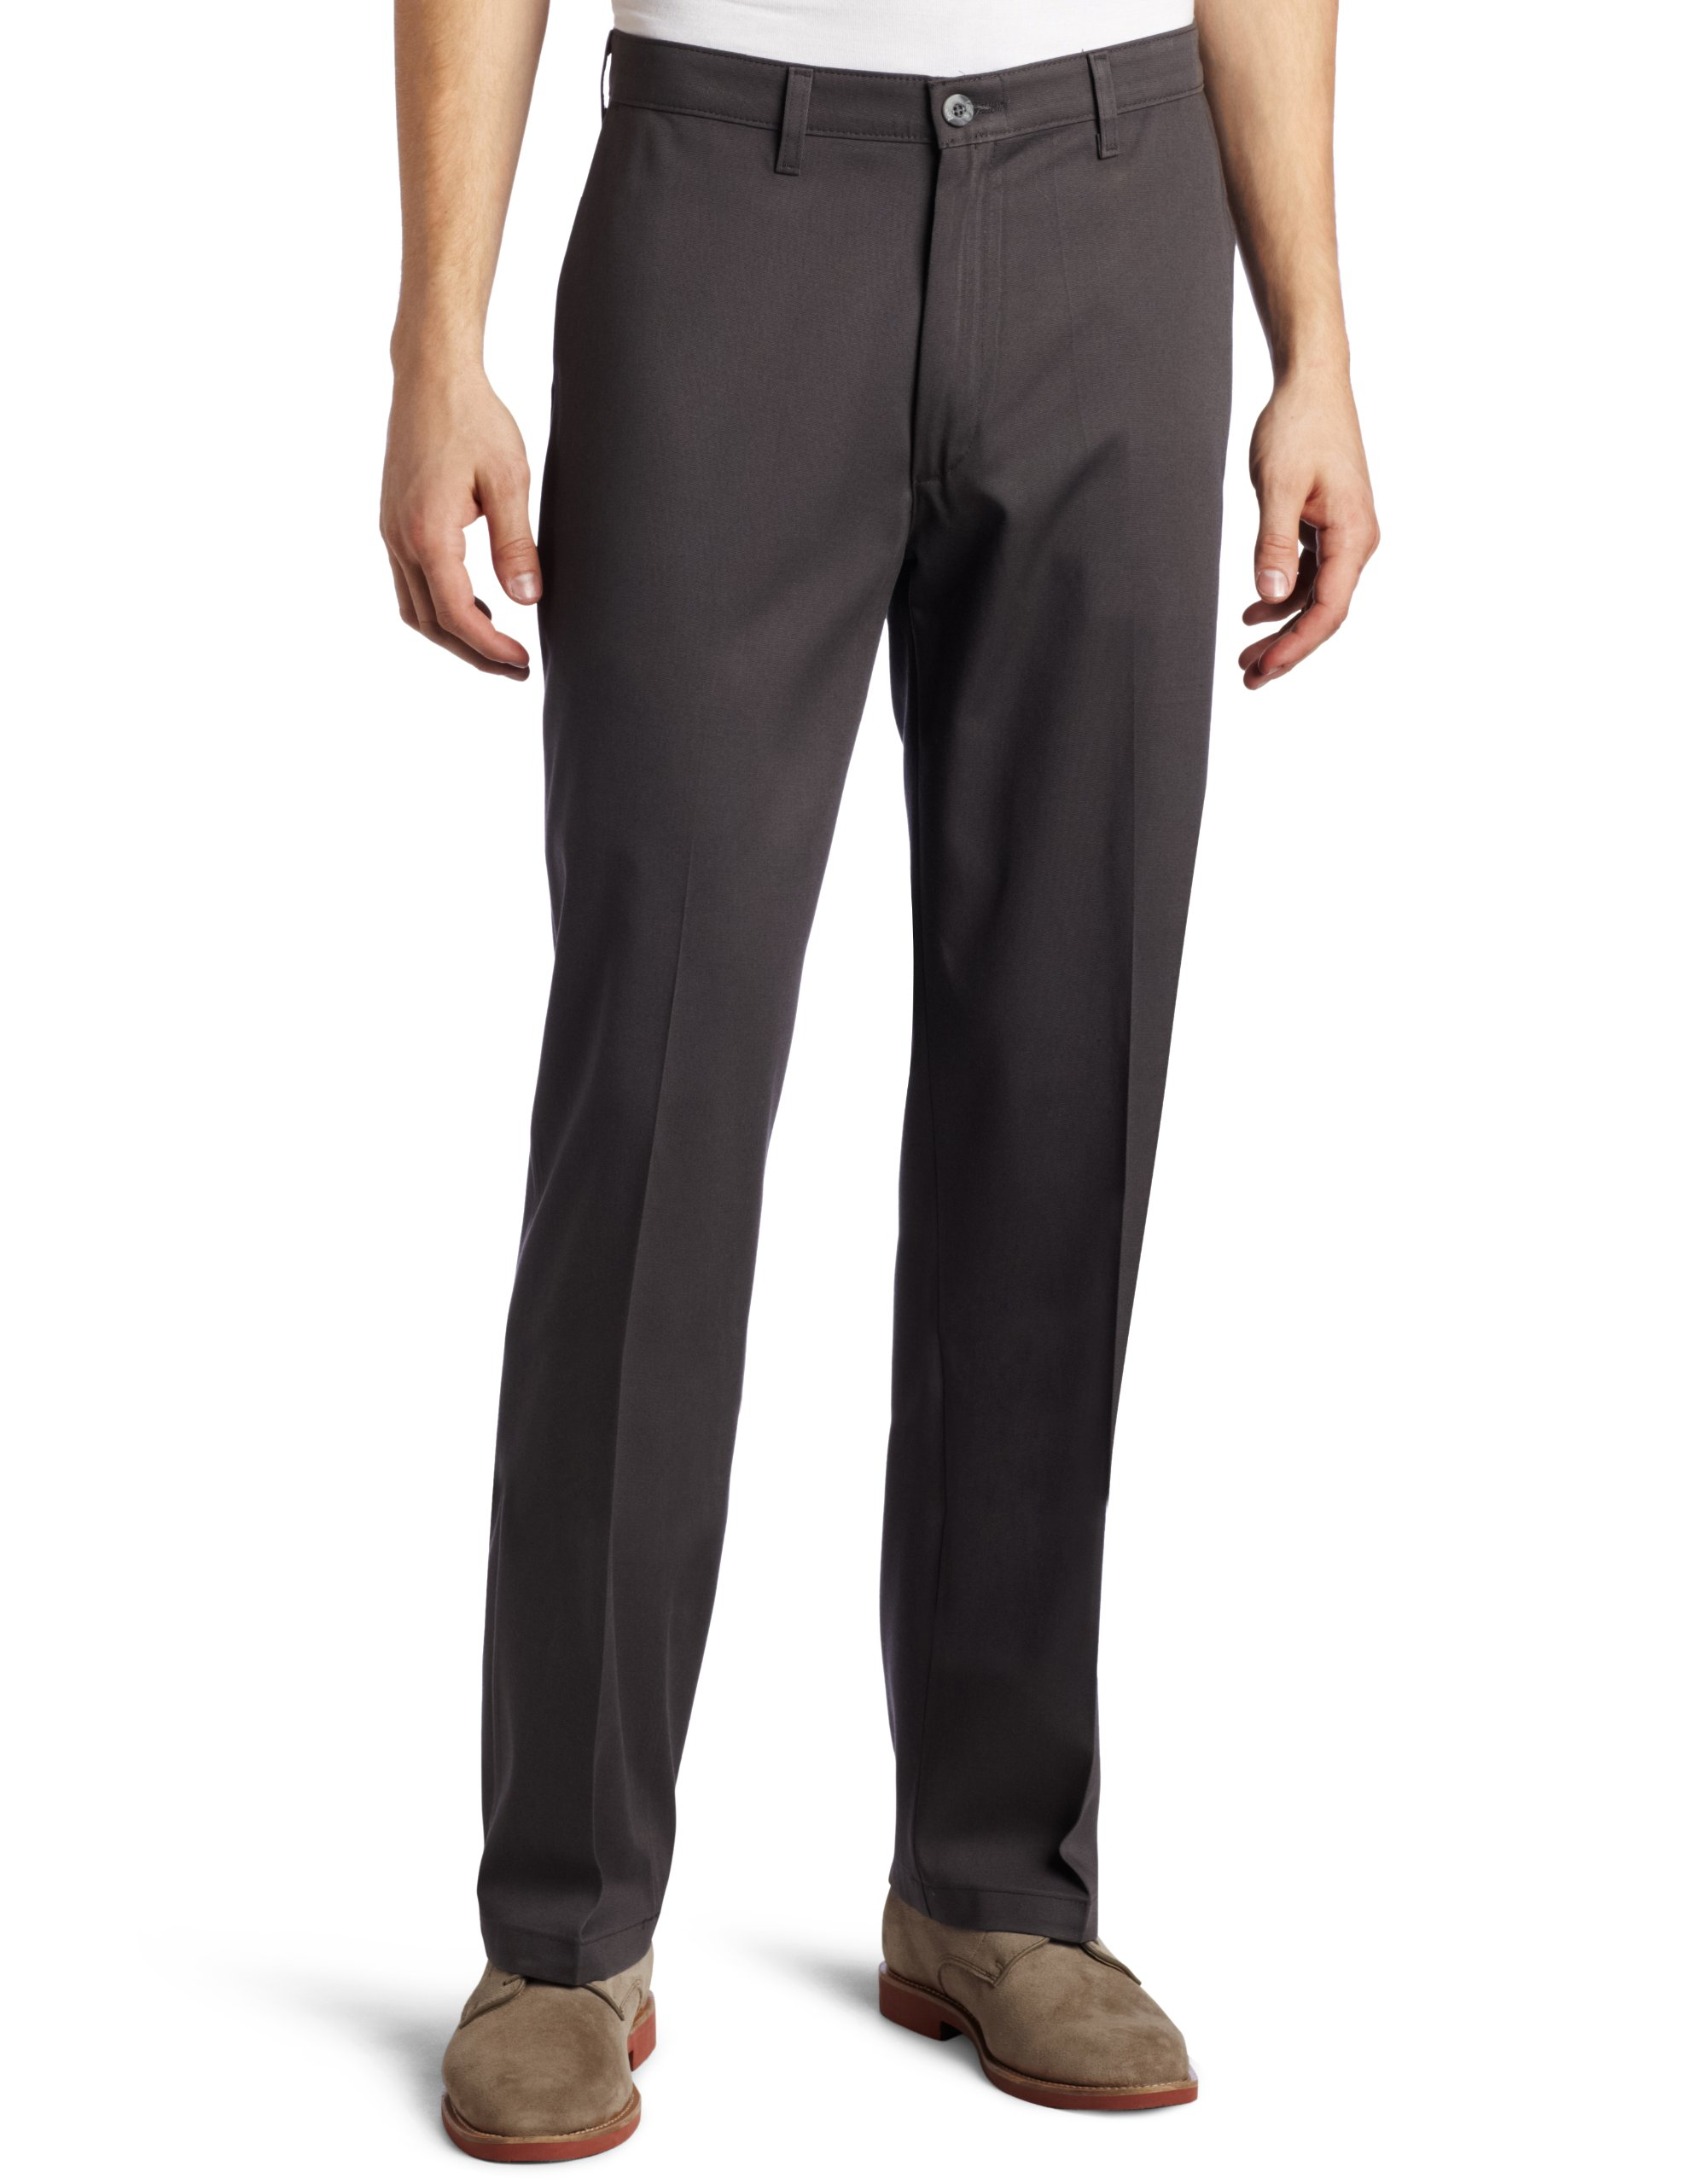 Lee Men's Comfort Waist Custom Relaxed Fit Flat Front Pant,Shadow Grey, 36W x 29L